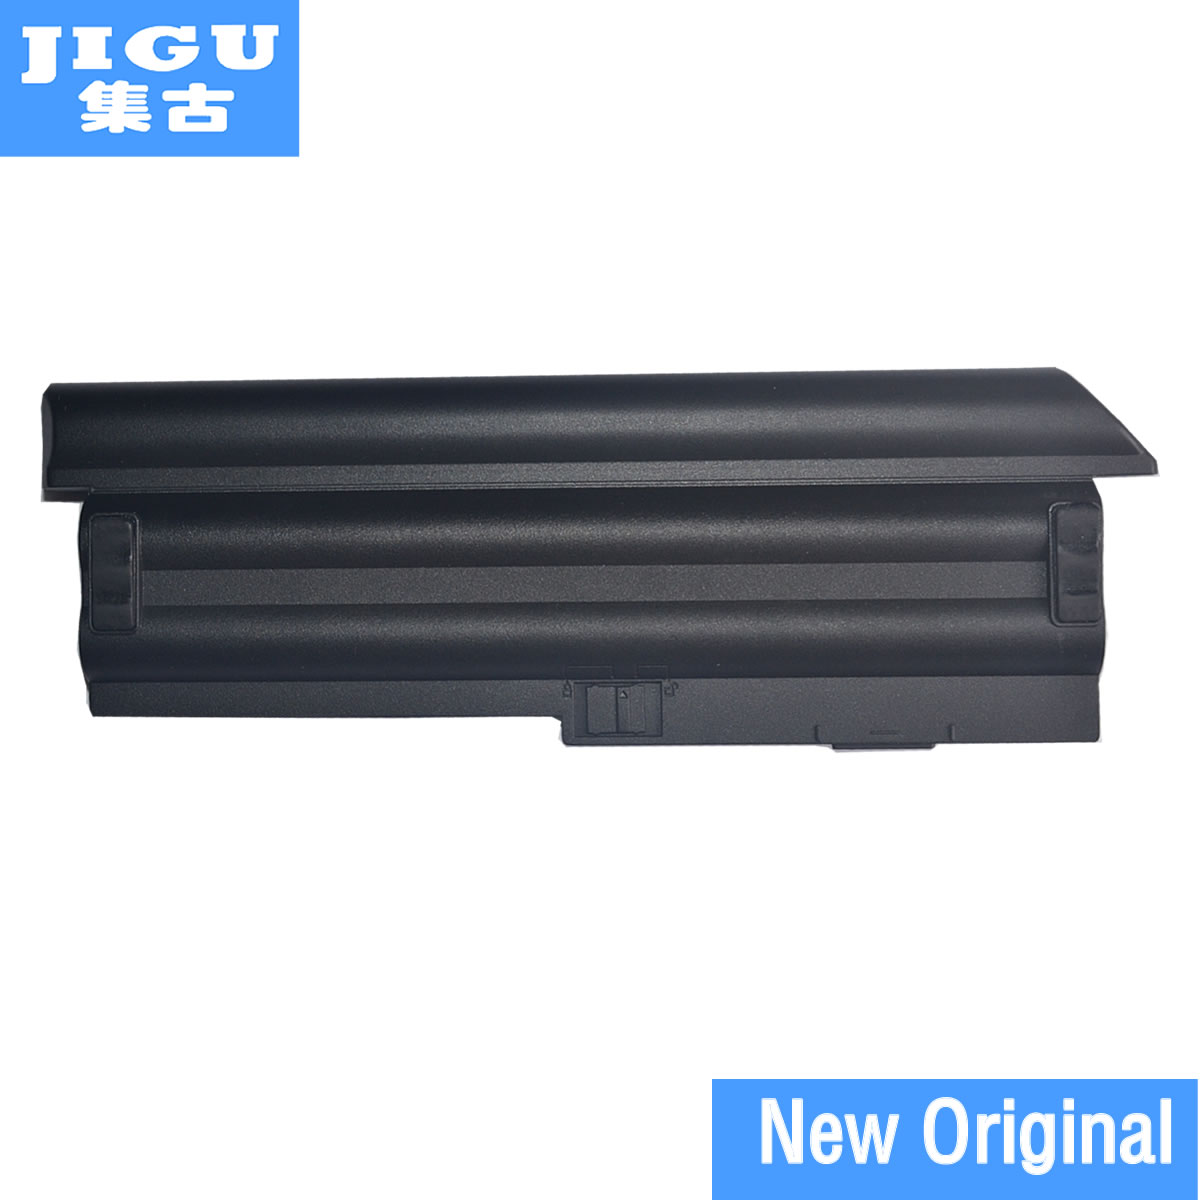 JIGU Free shipping 0A36282 42T4873 42T4875 42T4940 42T4941 Original laptop Battery For Lenovo ThinkPad X220 x220s x220i 9cells original 9cell for lenovo ibm thinkpad x220 x220i x220s 0a36282 0a36283 42t4862 42y4874 42y4868 42t4941 42t4940 42t4942 42y4864